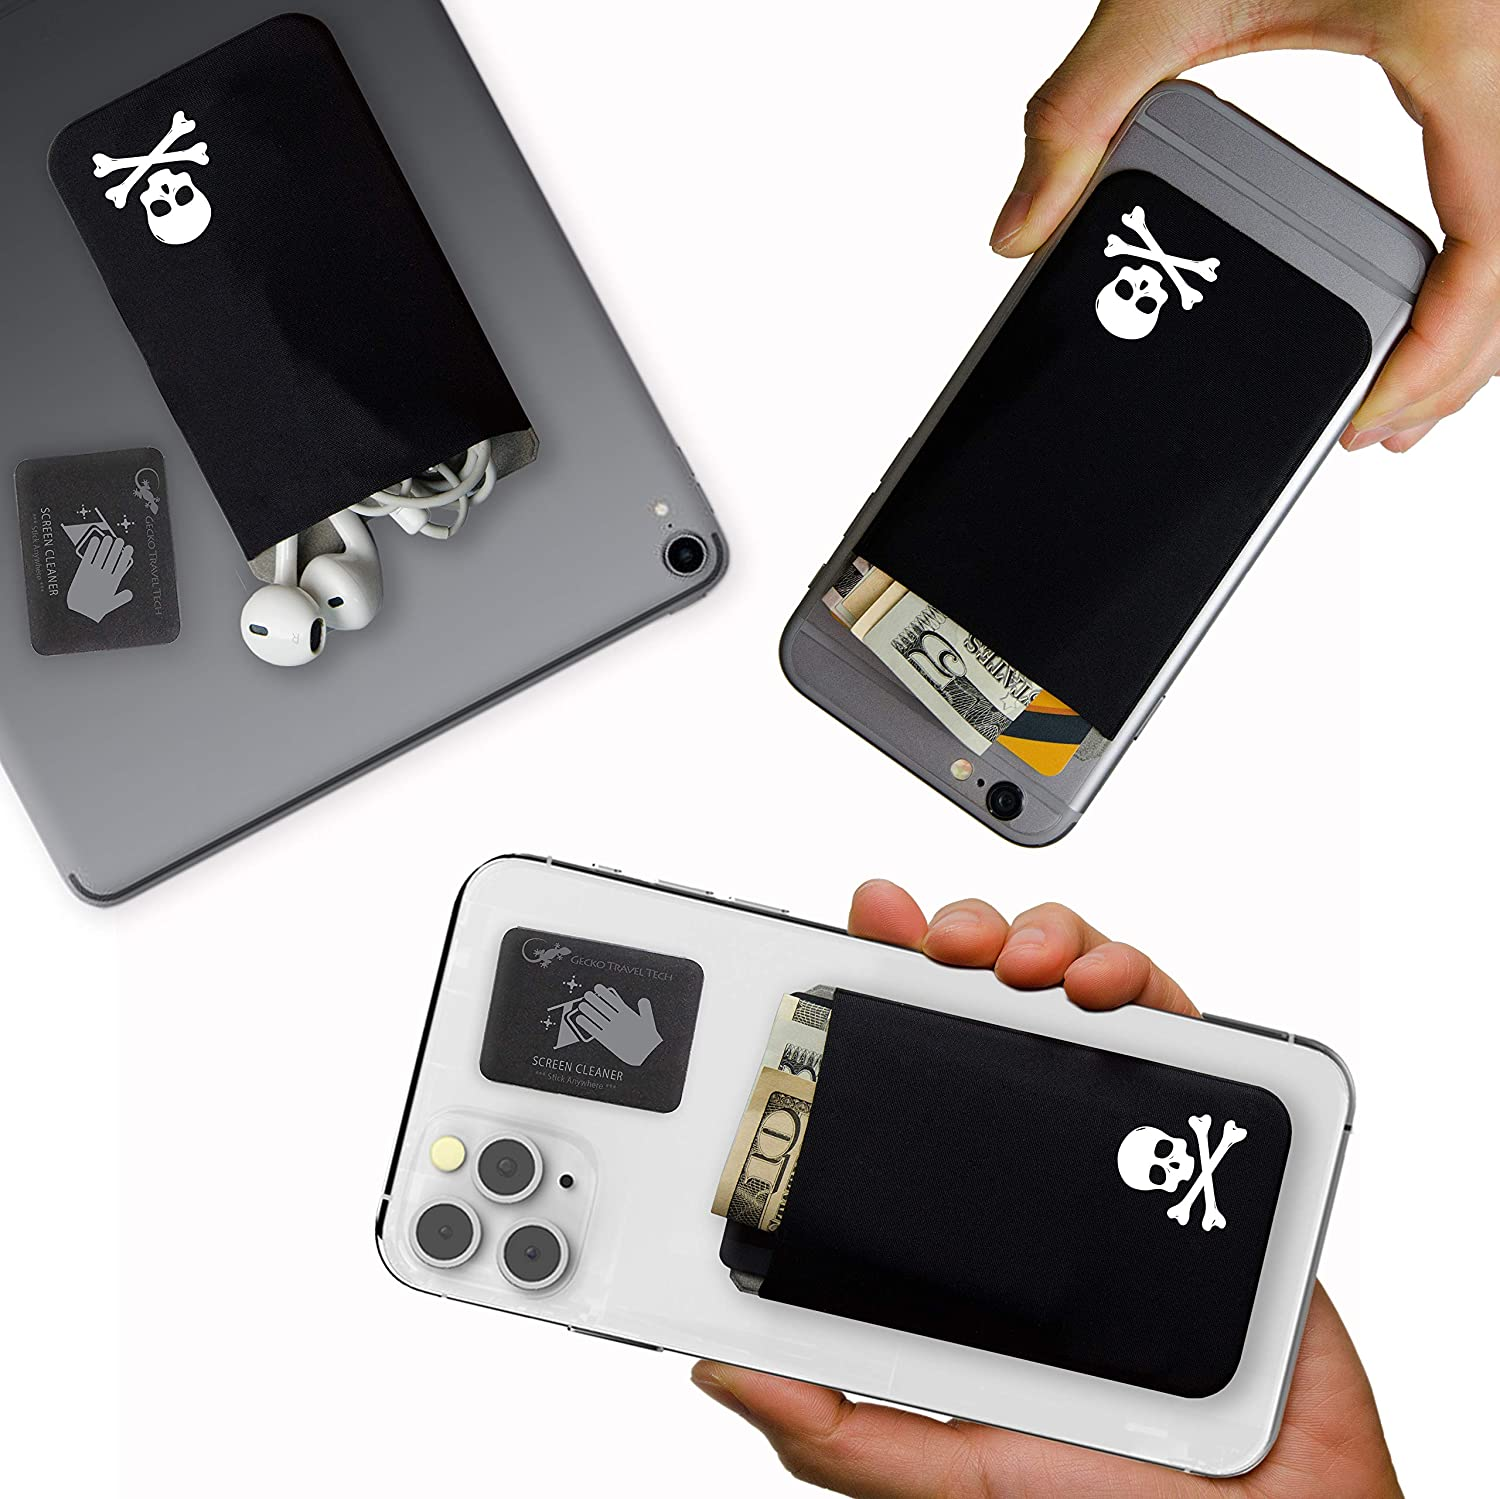 snowboard cell phone card holder Snowboard iphone case card holder phone wallet stick on for snowbaroders - Snowboard